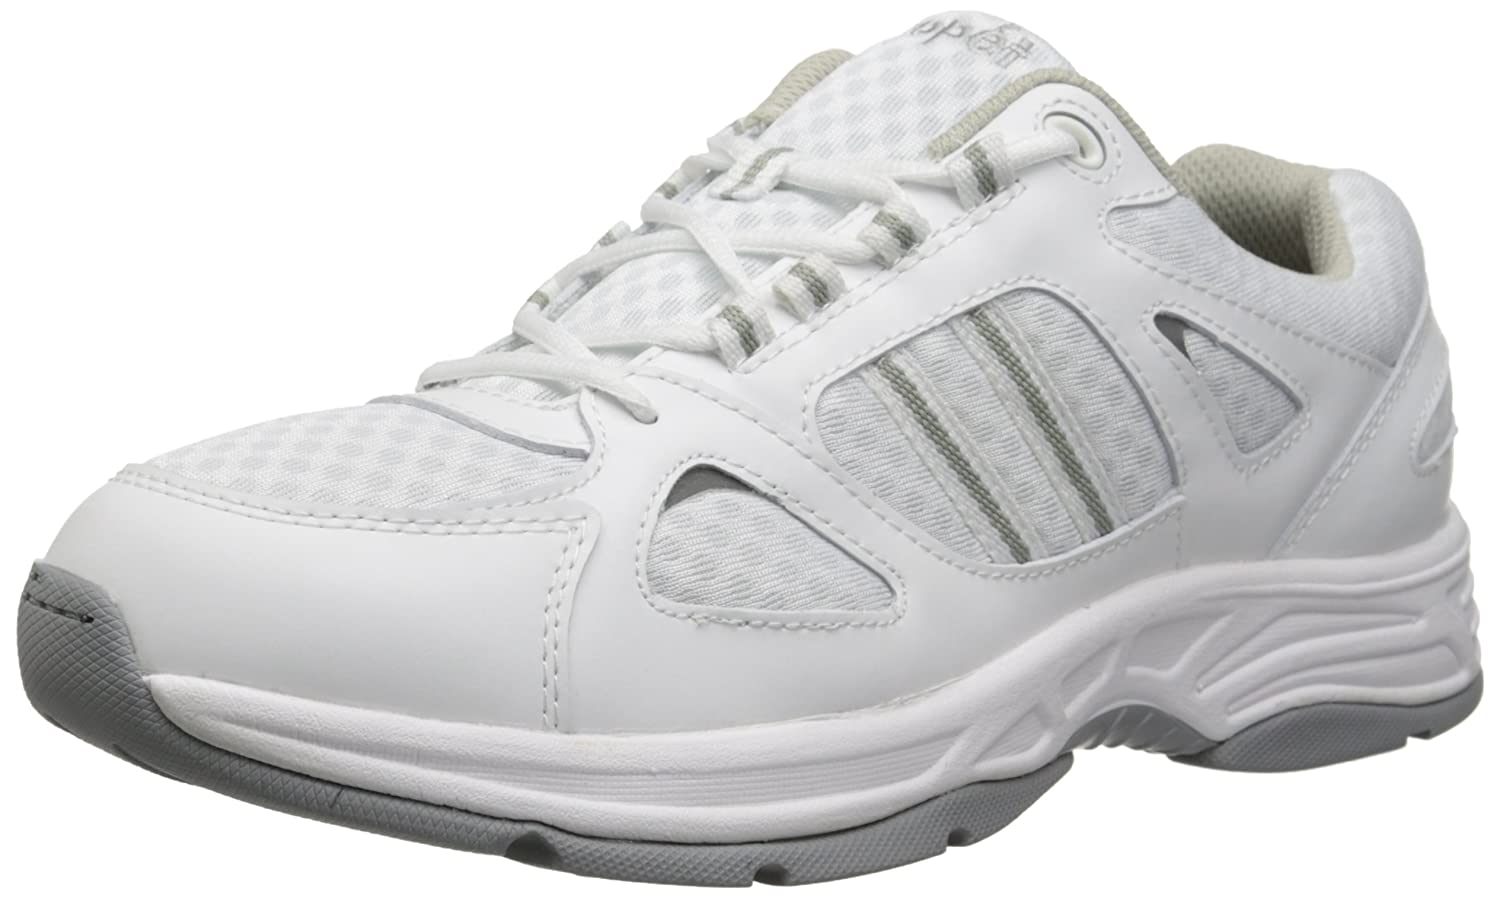 Propet Men's Denzel Casual Shoe 10 D(M) US|White